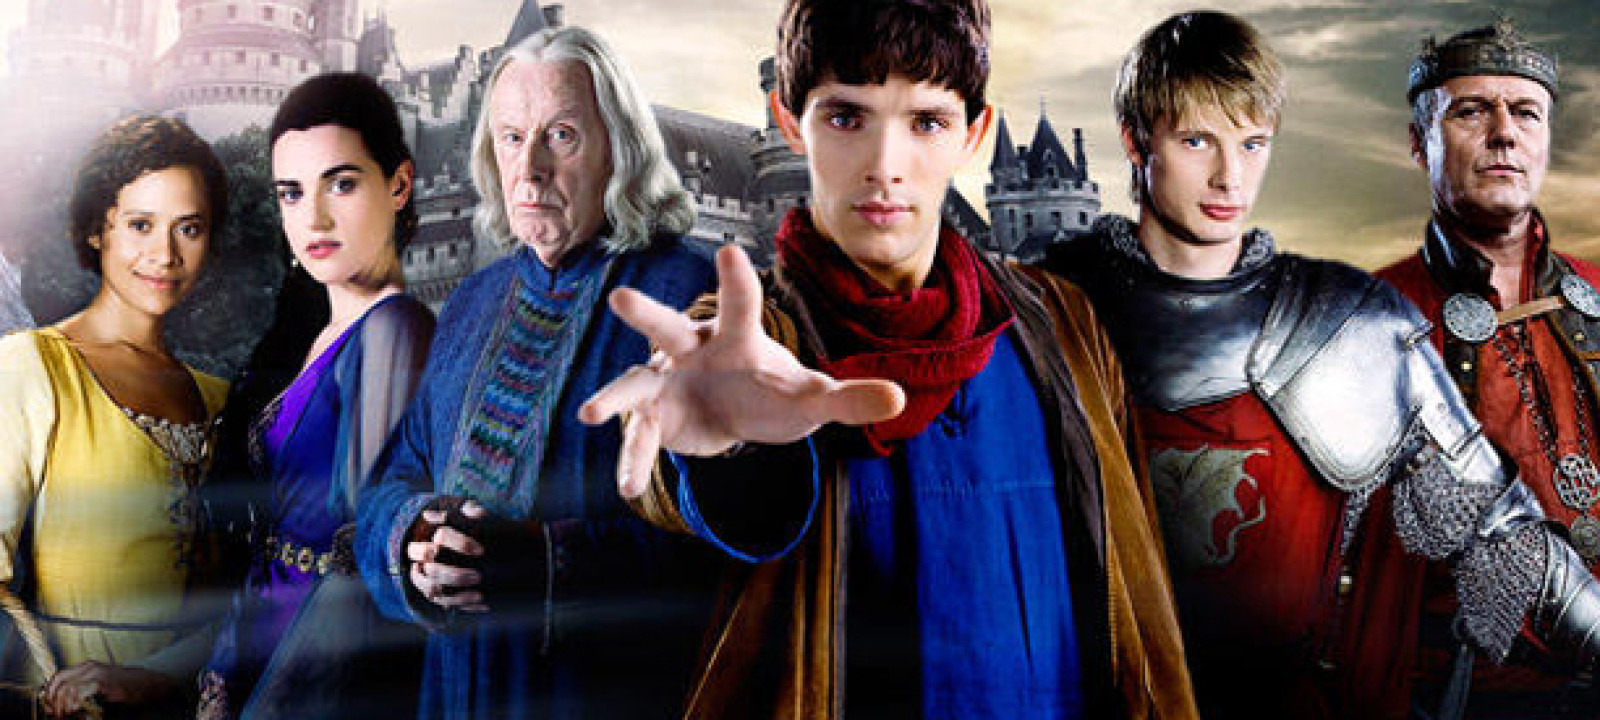 Bbc america s merlin aired for five years from 2008 2012 bbca